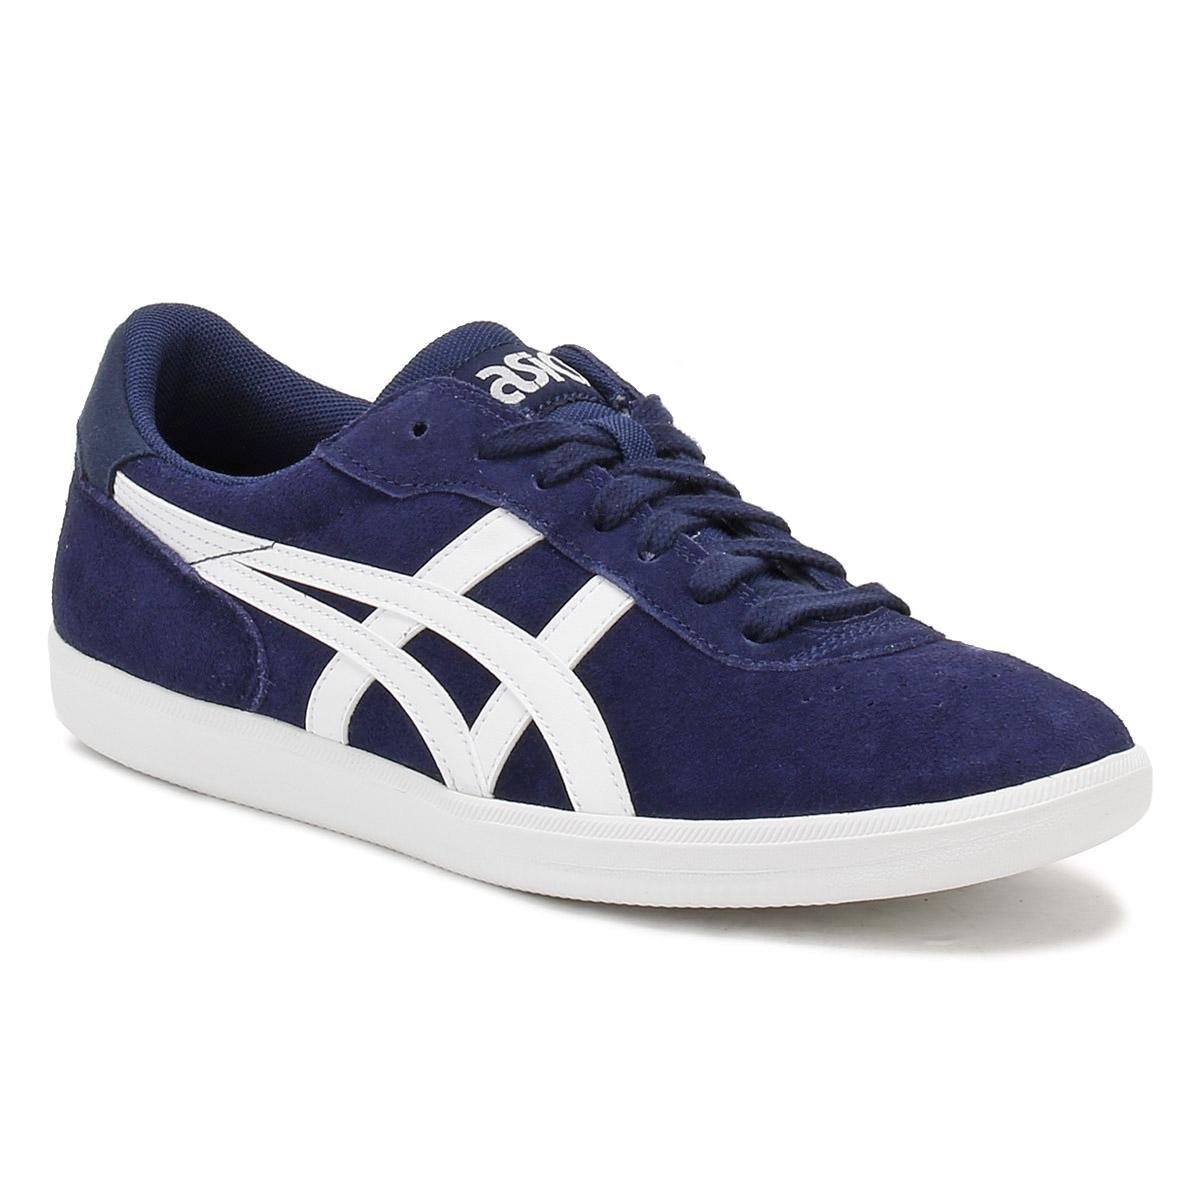 Asics Mens Peacoat Navy Percussor Trs Trainers in Blue for